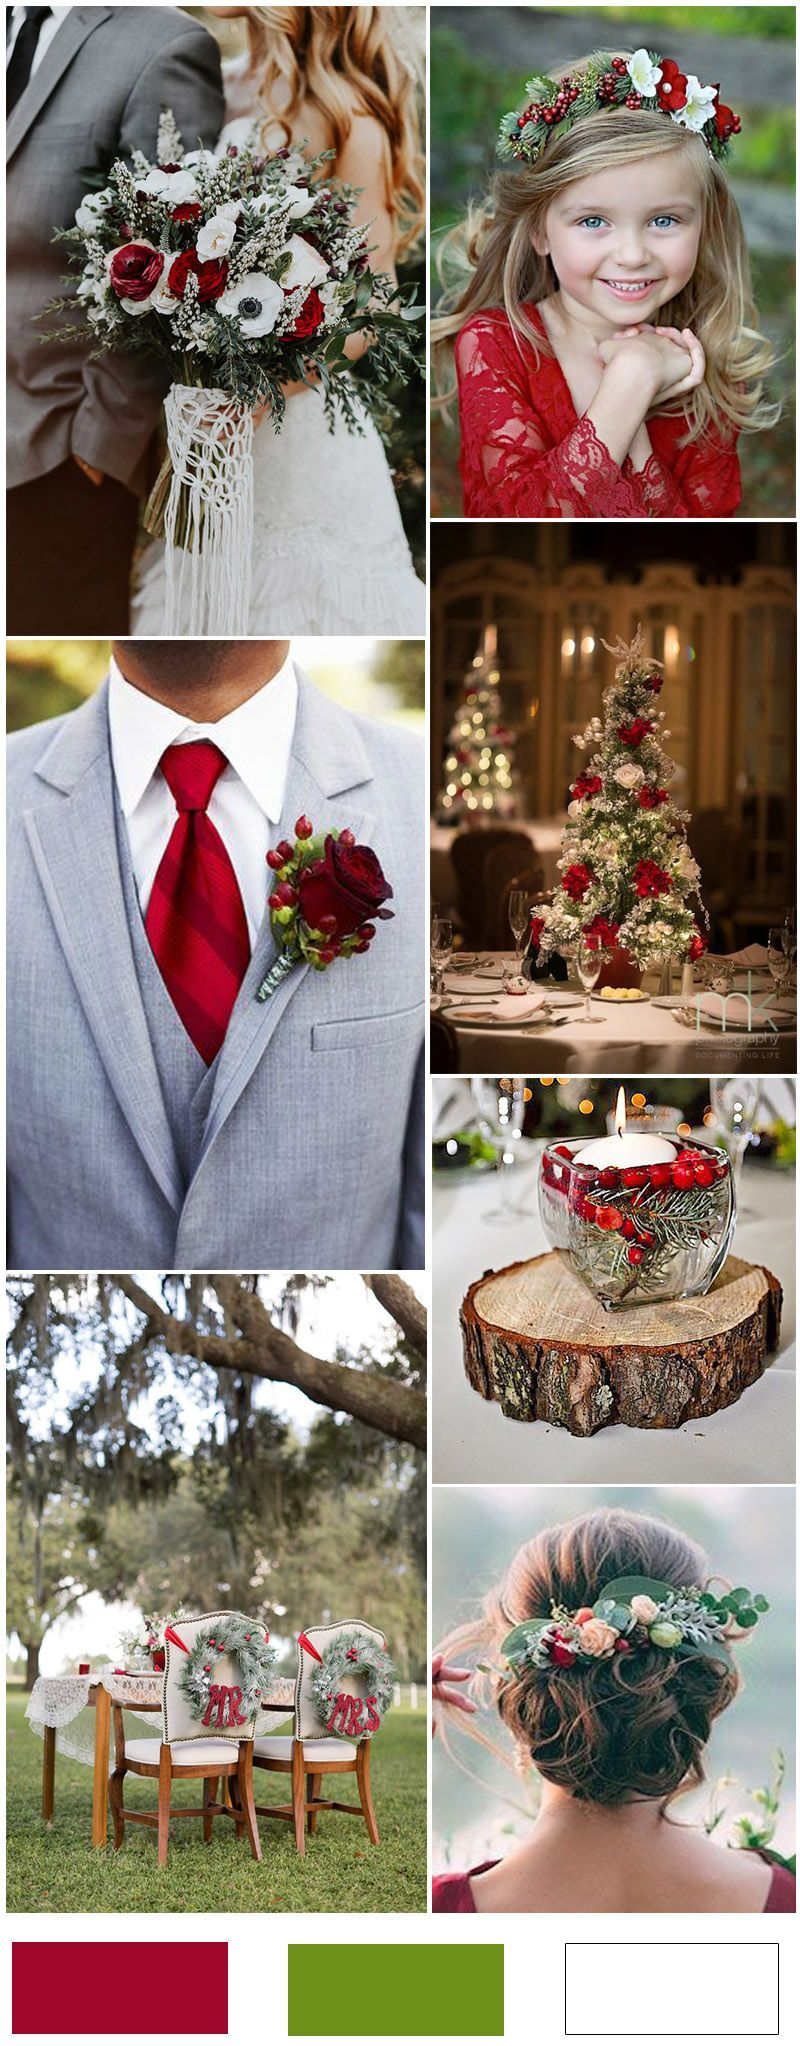 Wedding decoration ideas red and white   Christmas Wedding Ideas You Canut Miss  Weddings Wedding and